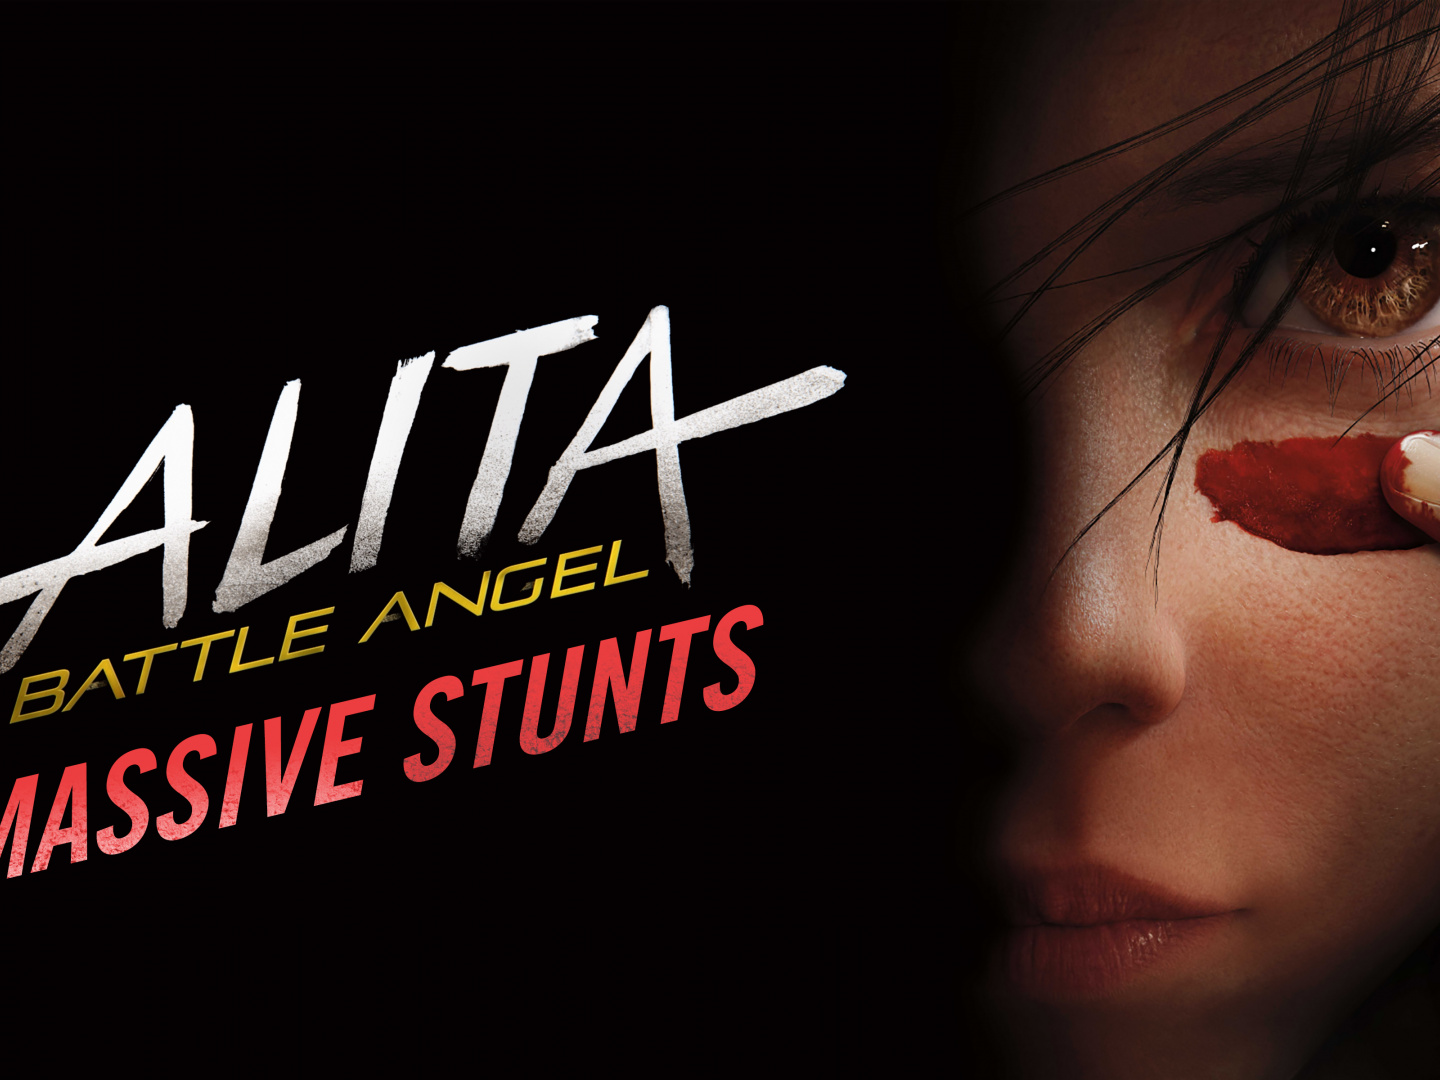 ALITA BATTLE ANGEL MASSIVE STUNTS Thumbnail